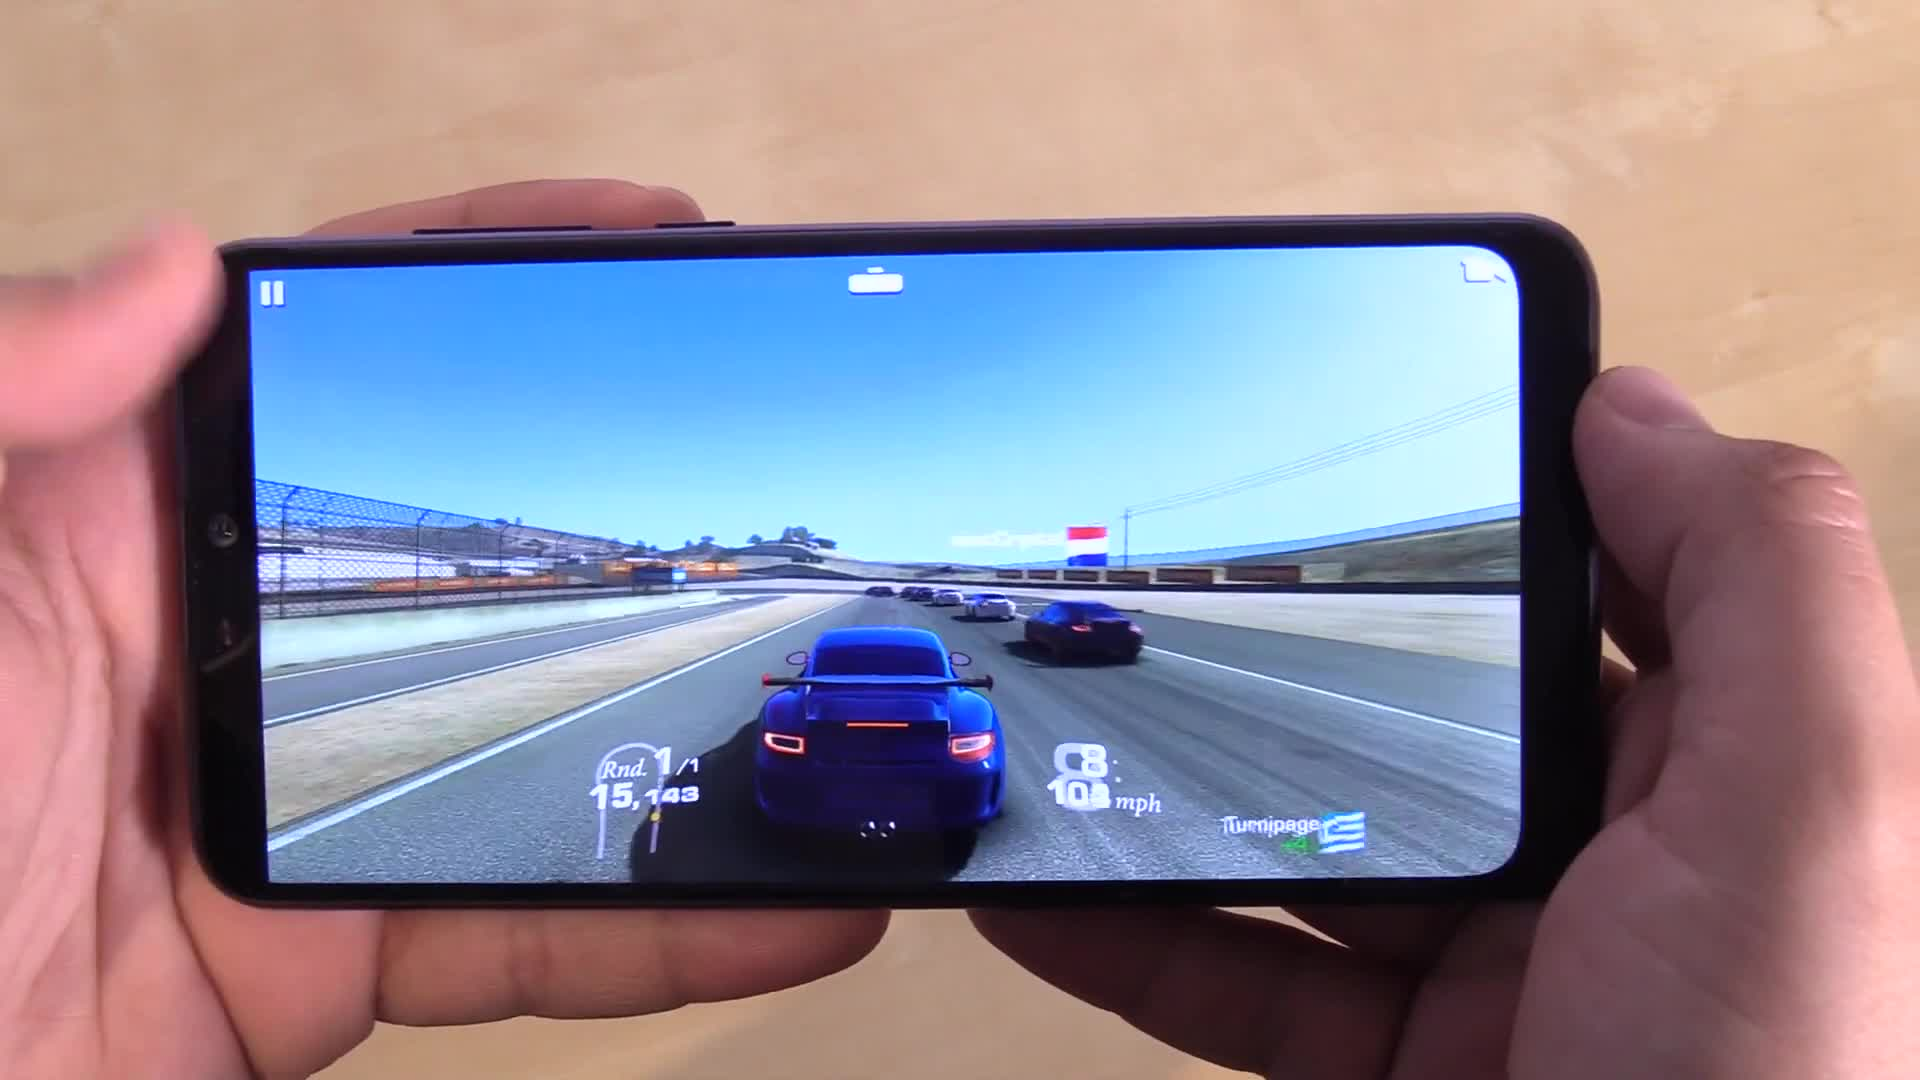 Smartphone, Android, Hands-On, Asus, NewGadgets, Johannes Knapp, ZenFone, Asus ZenFone, ASUS ZenFone Max Pro M2, ZenFone Max Pro M2